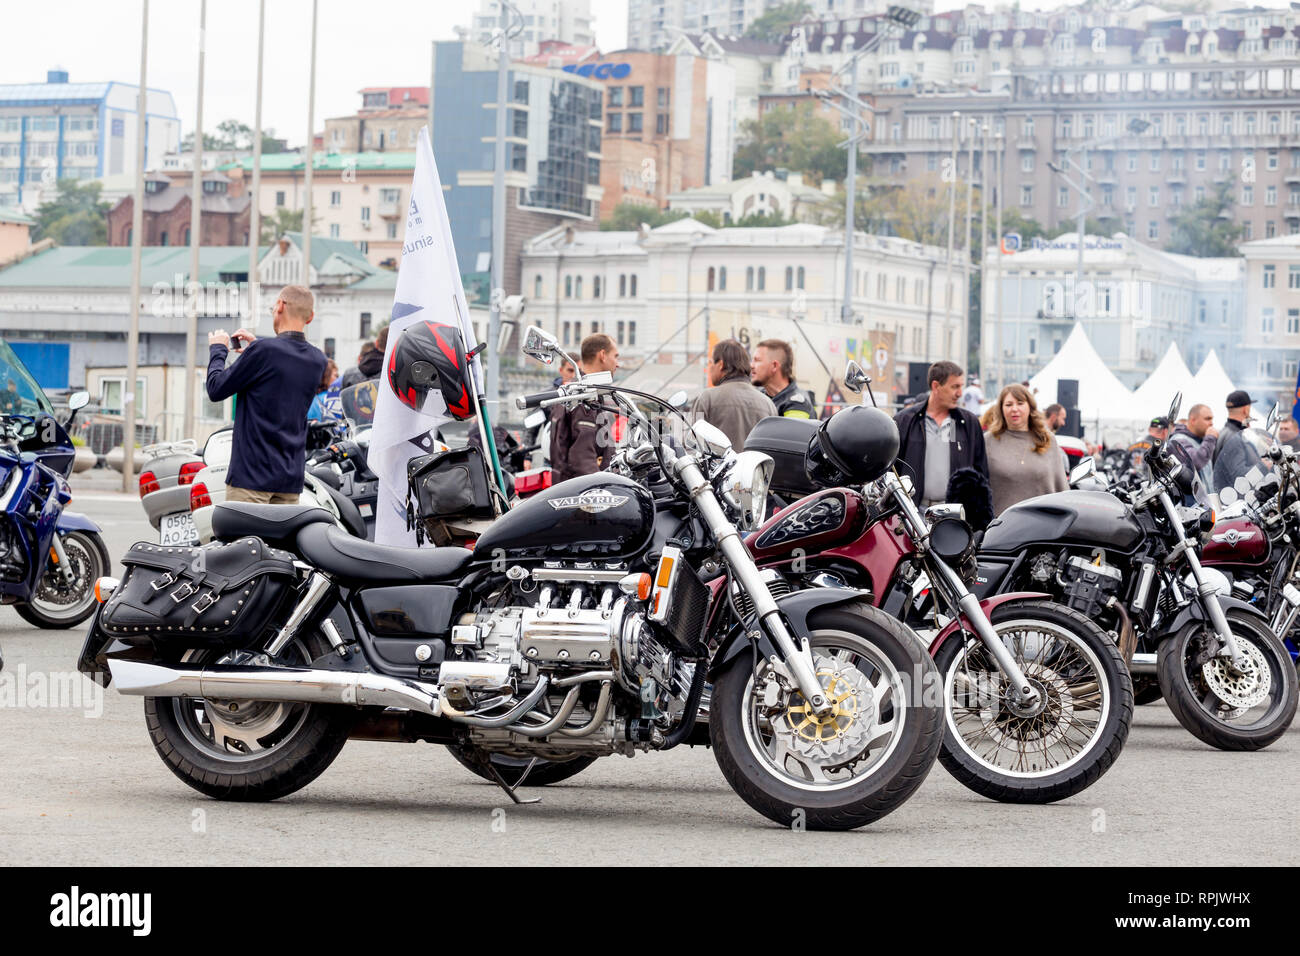 Russia Vladivostok 10 06 2018 Honda Valkyrie Bike Motorcycle On